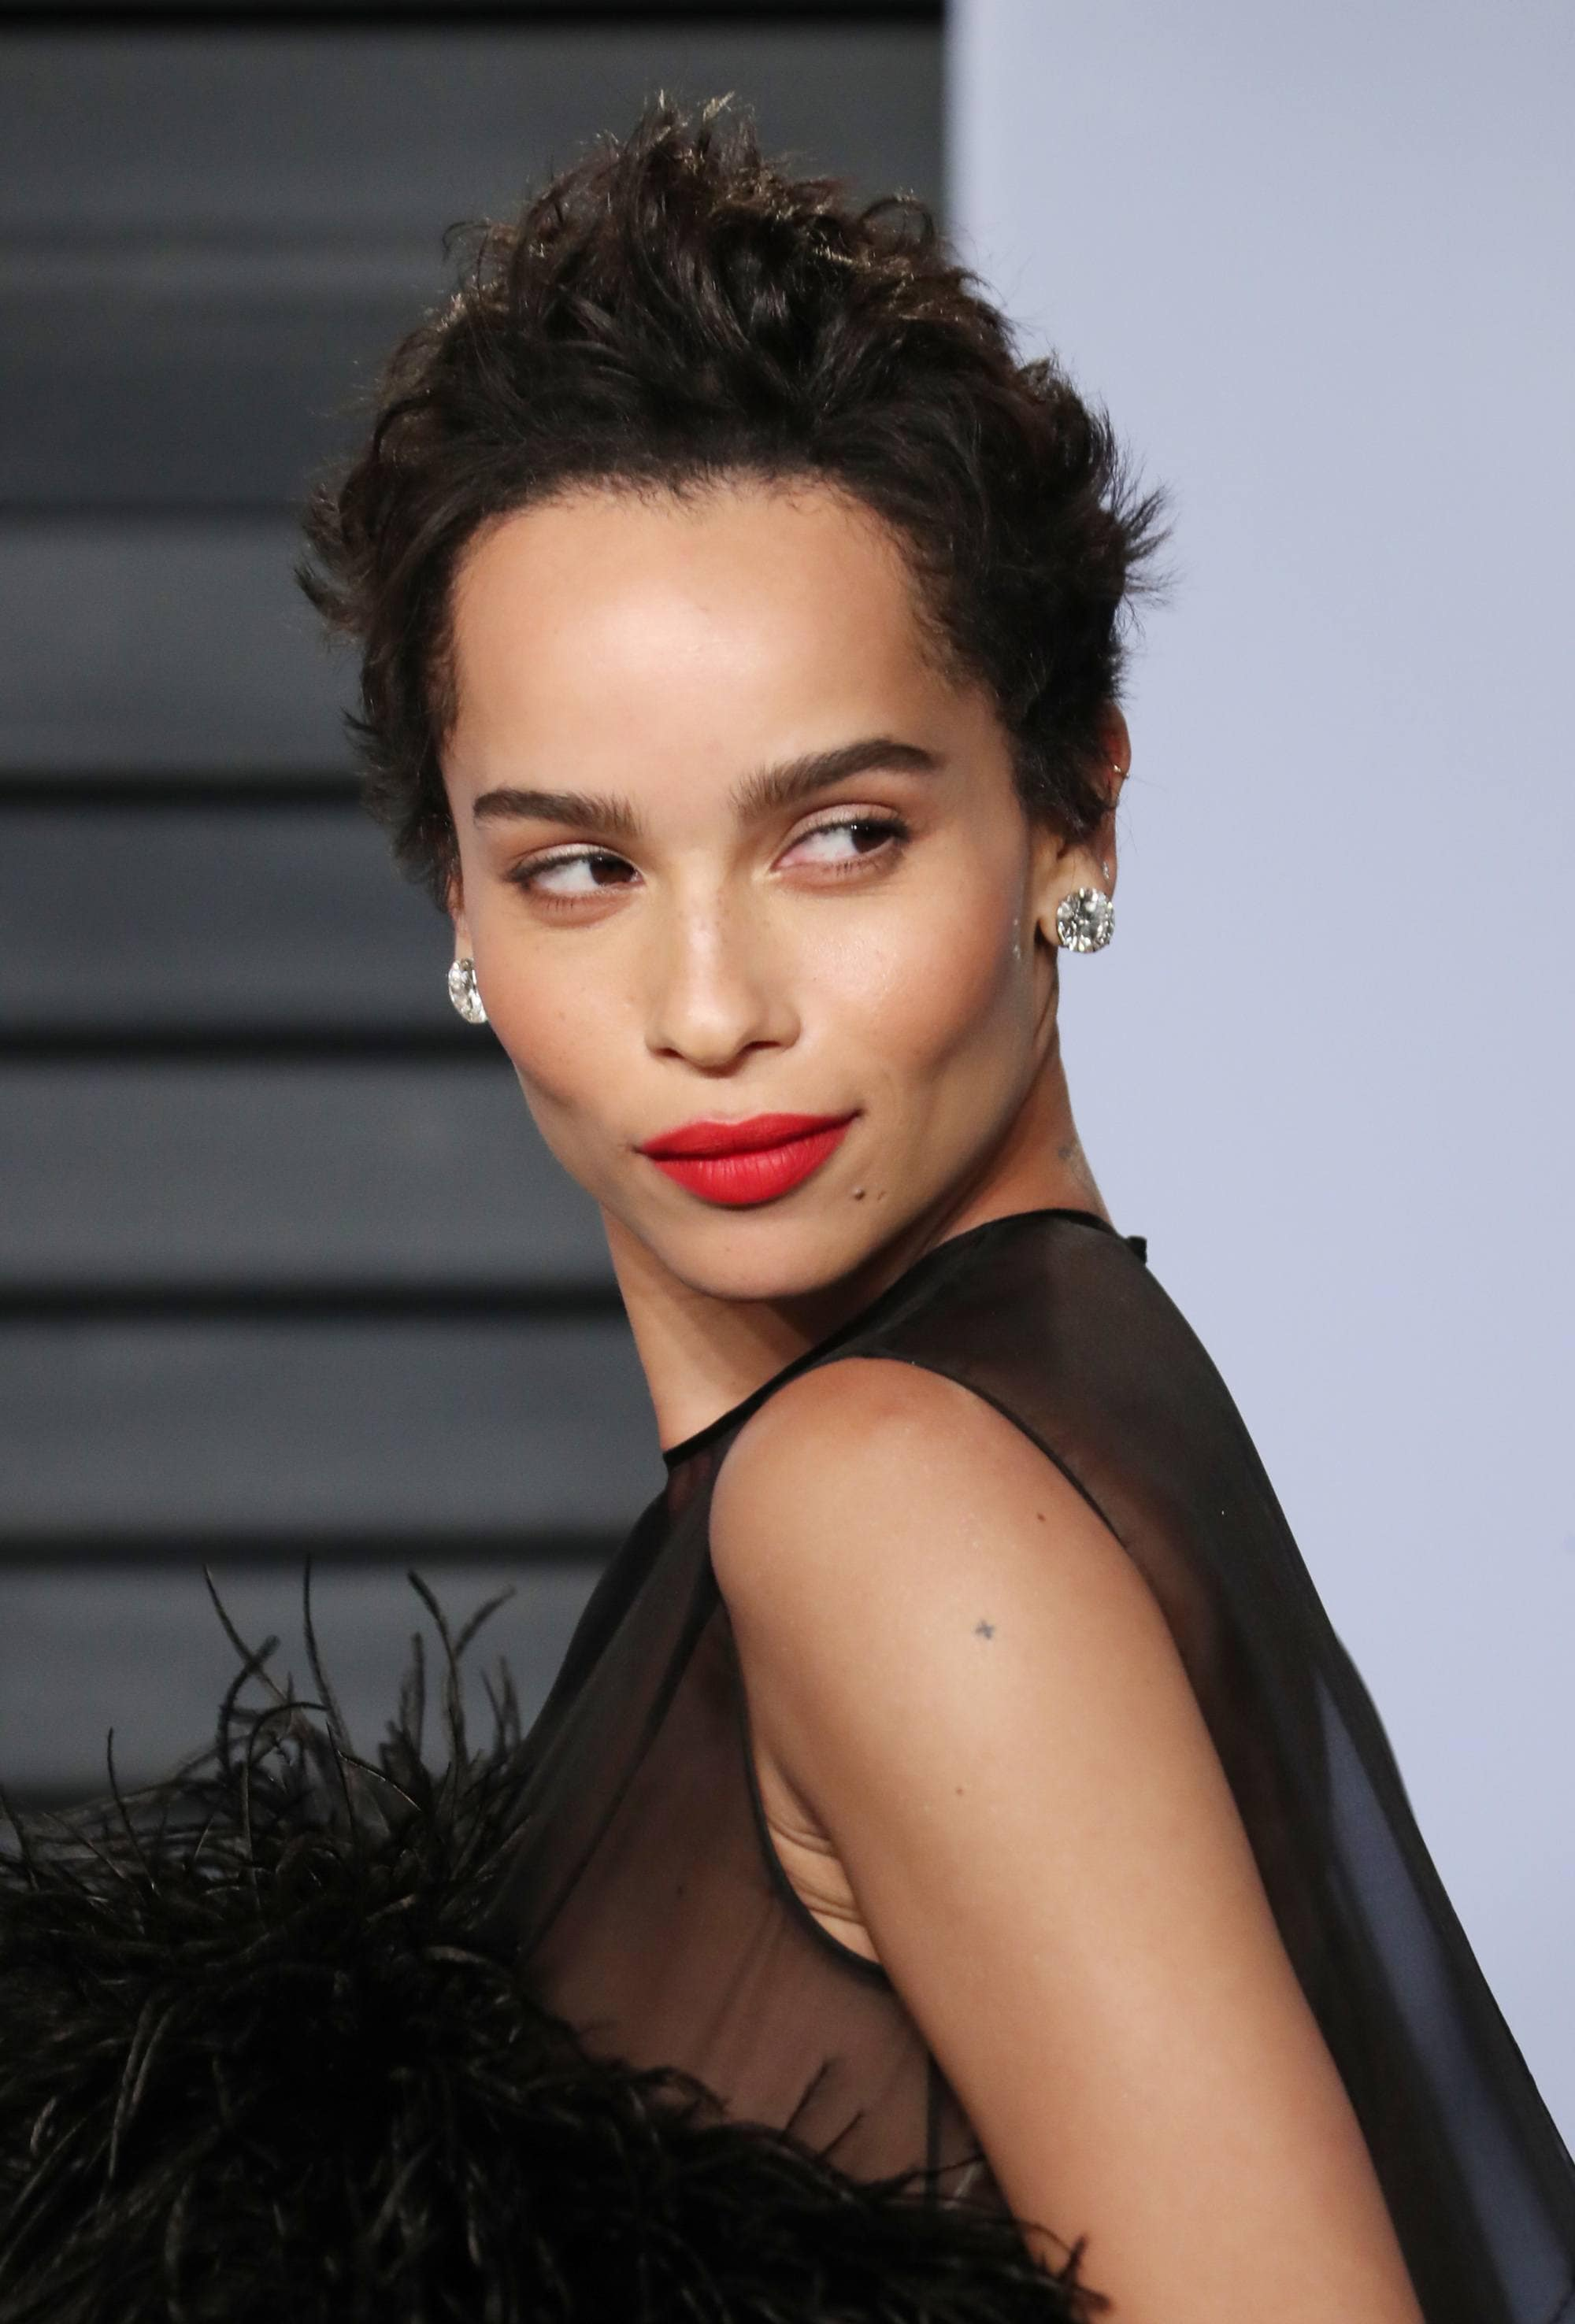 zoe kravitz dark brown spiky pixie cut on red carpet wearing red lipstick and black sheer dress